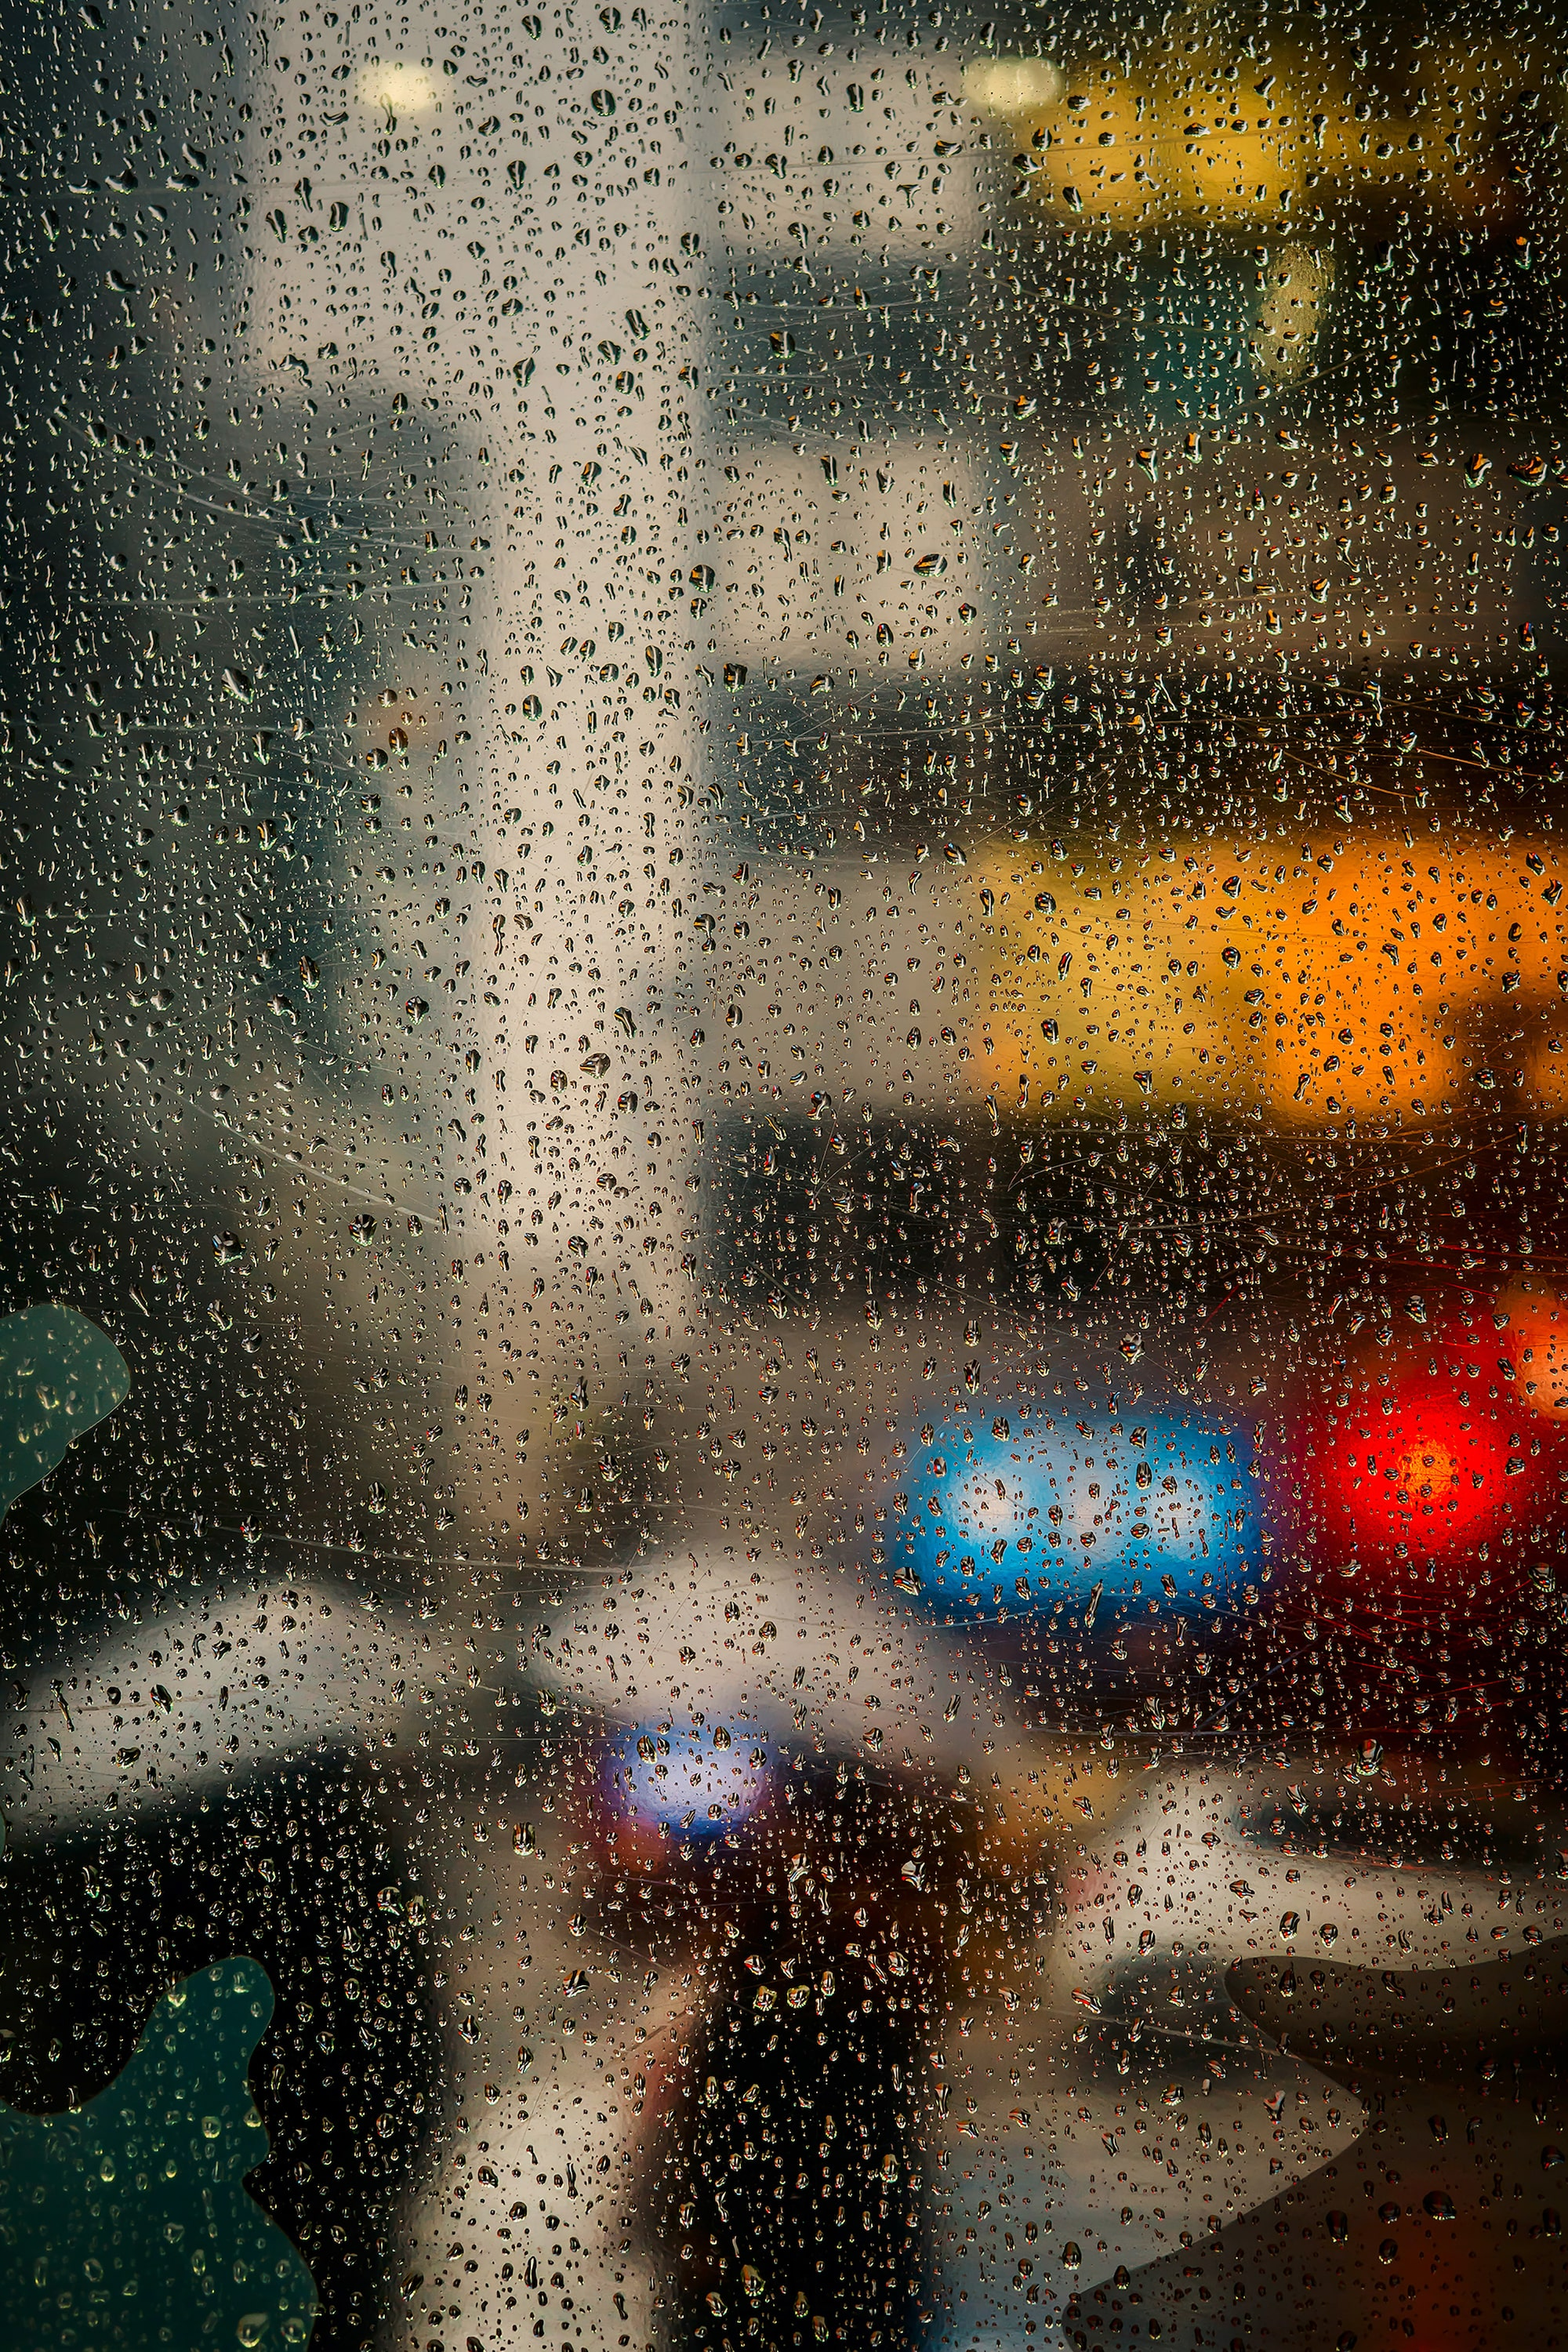 gabor erdelyi sony alpha 9 water droplets captured on a window with street lights behind